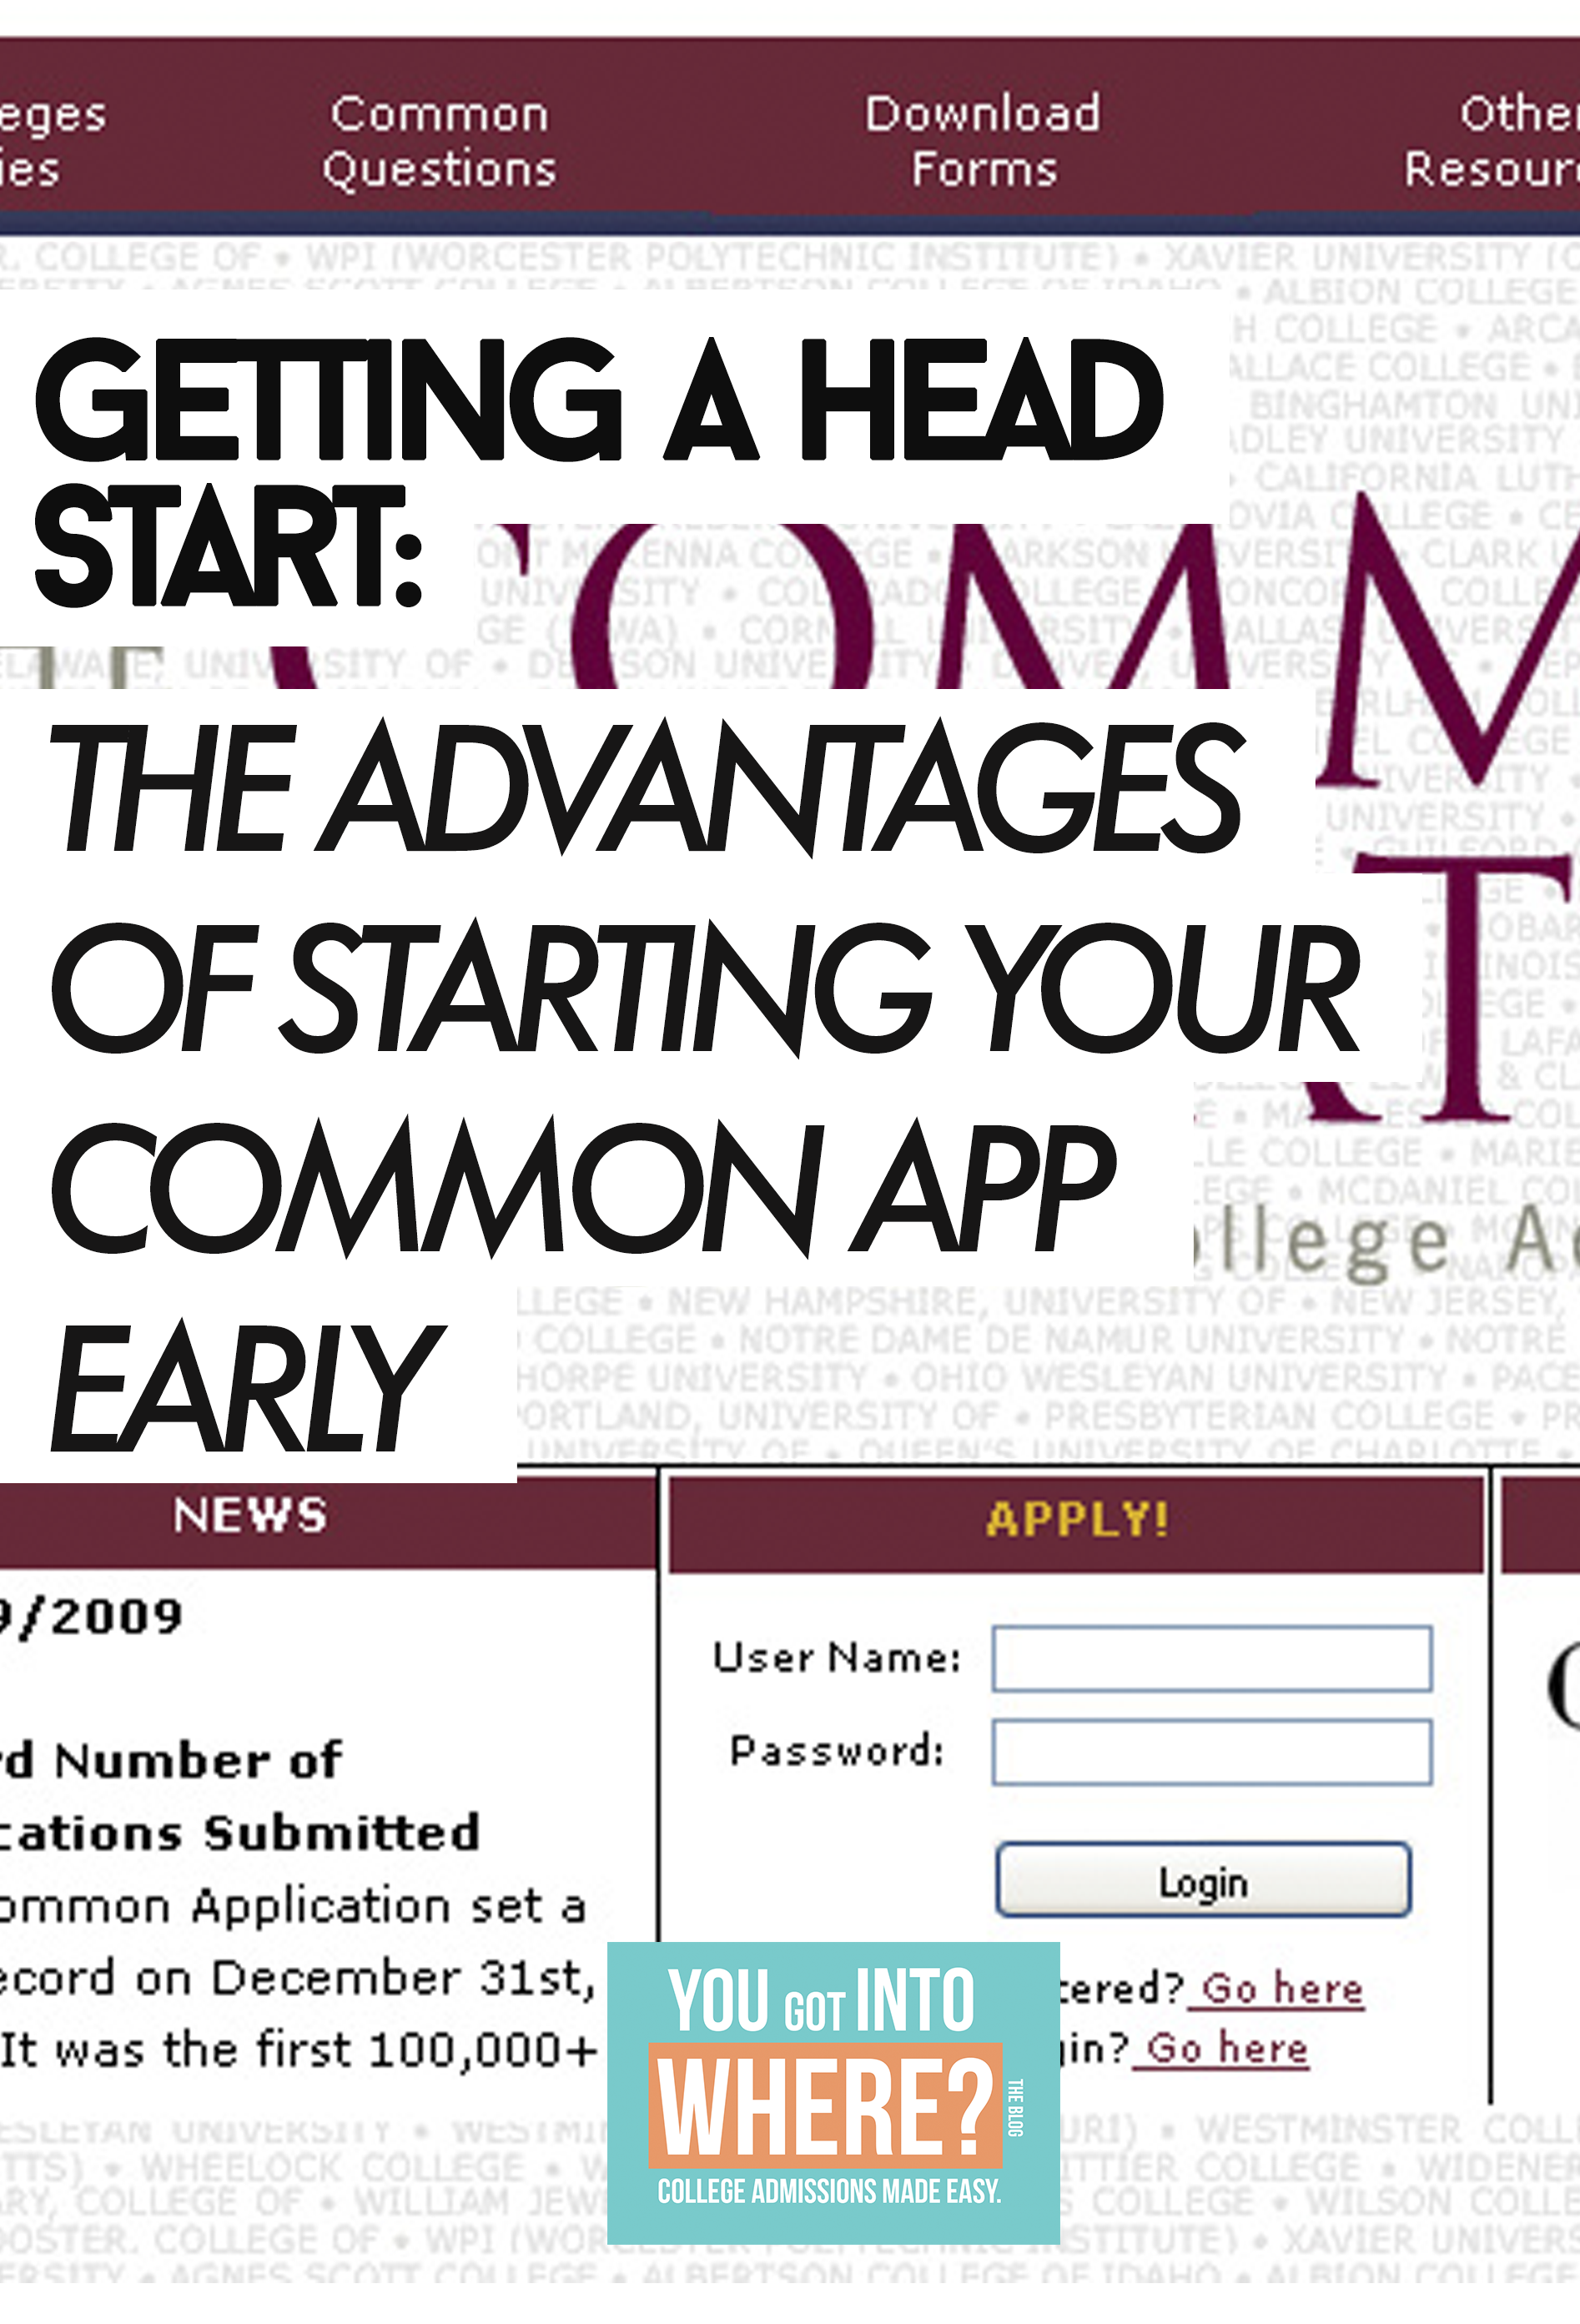 The Advantages of Starting Your Common Application Early